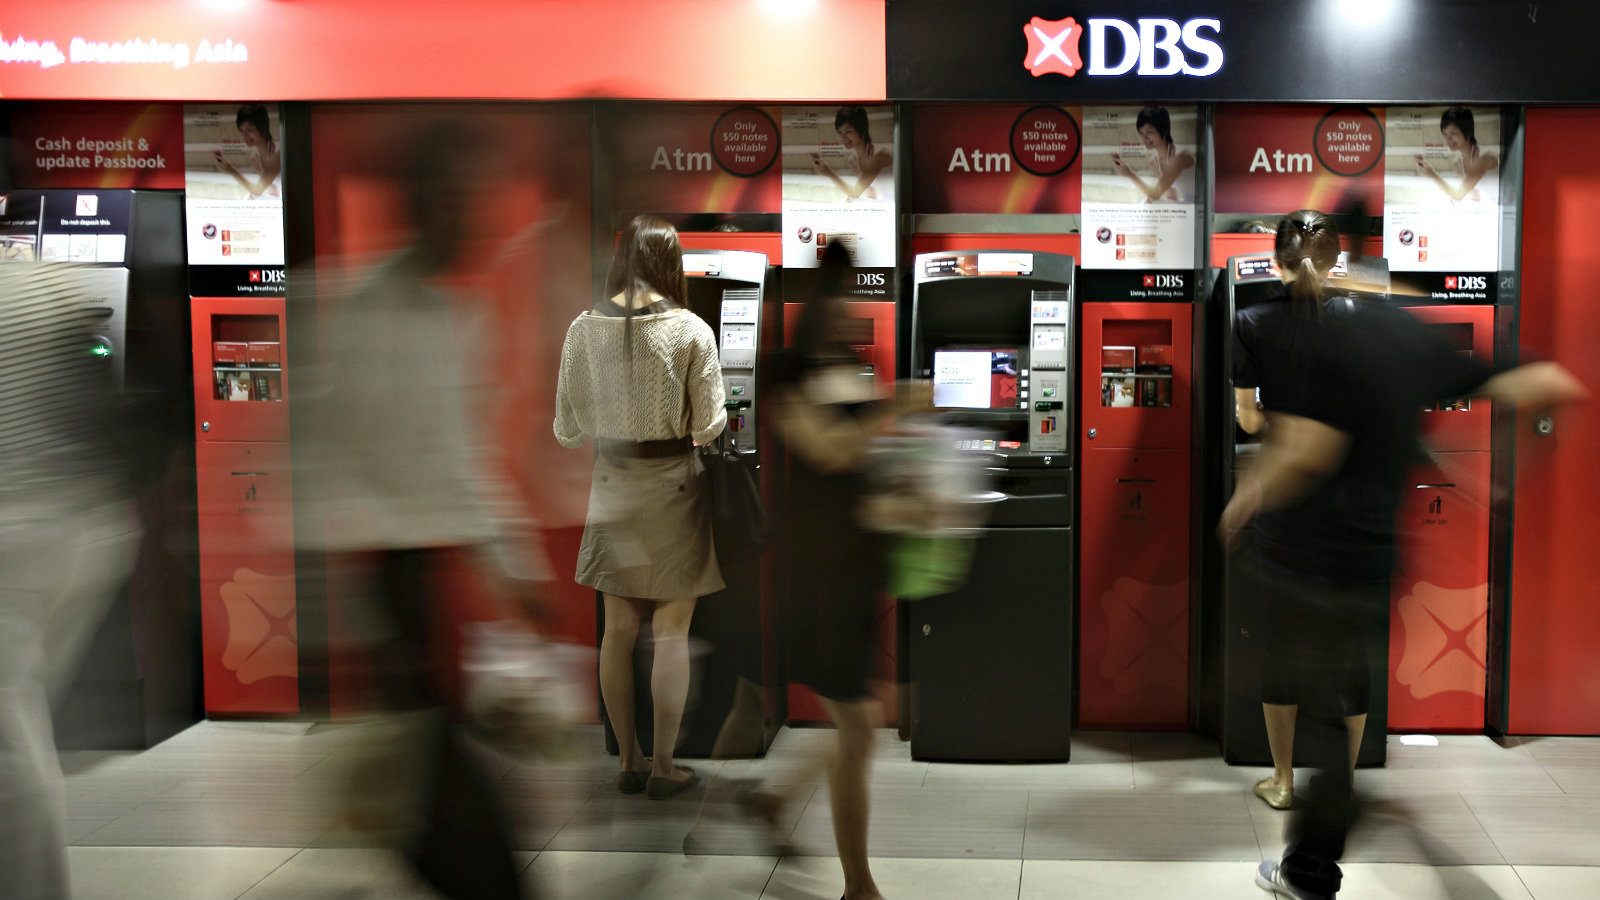 People use DBS ATMs at a subway station in Singapore